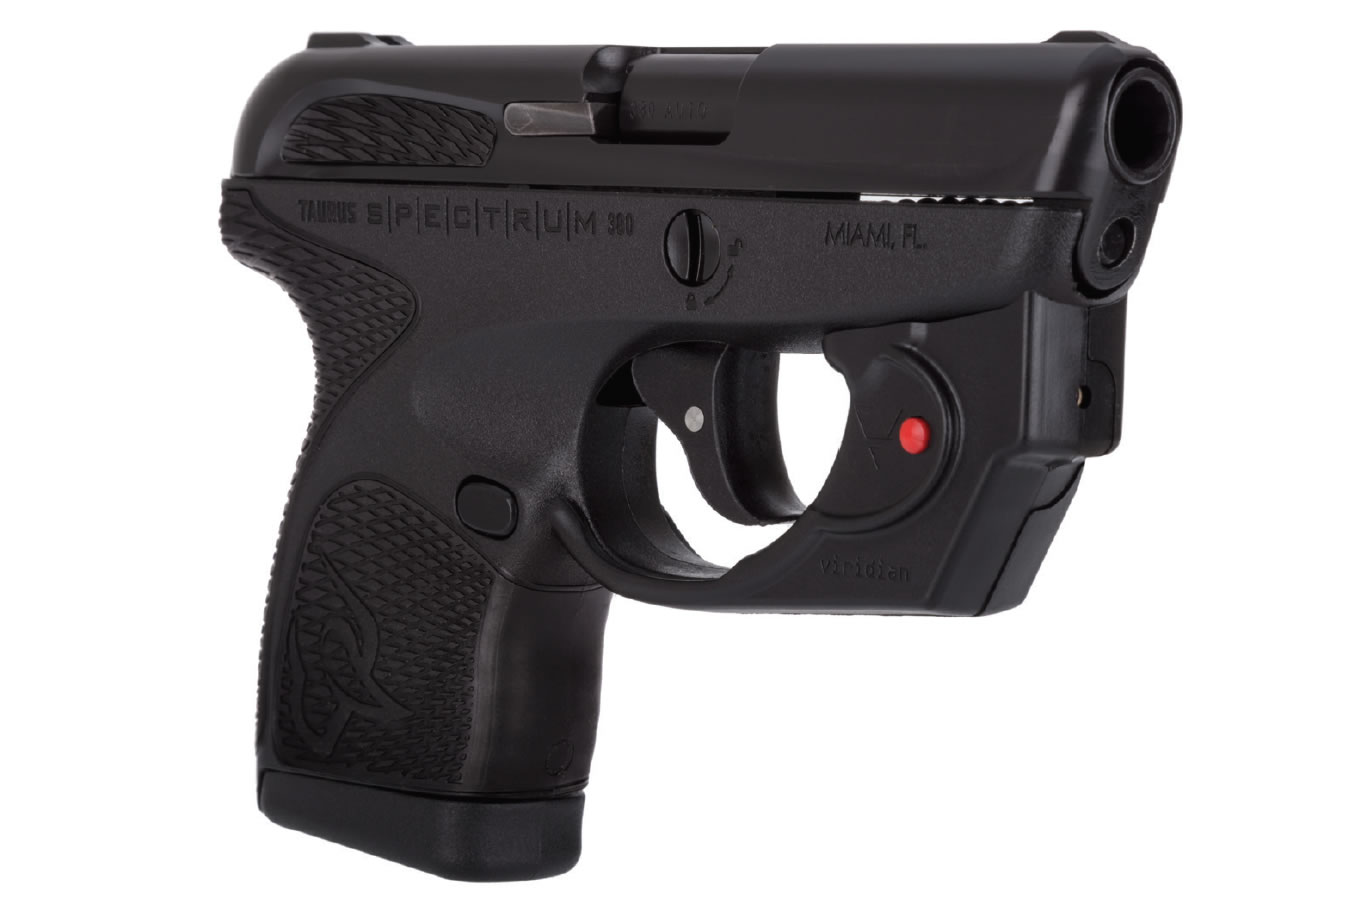 SPECTRUM 380 ACP WITH VIRIDIAN LASER